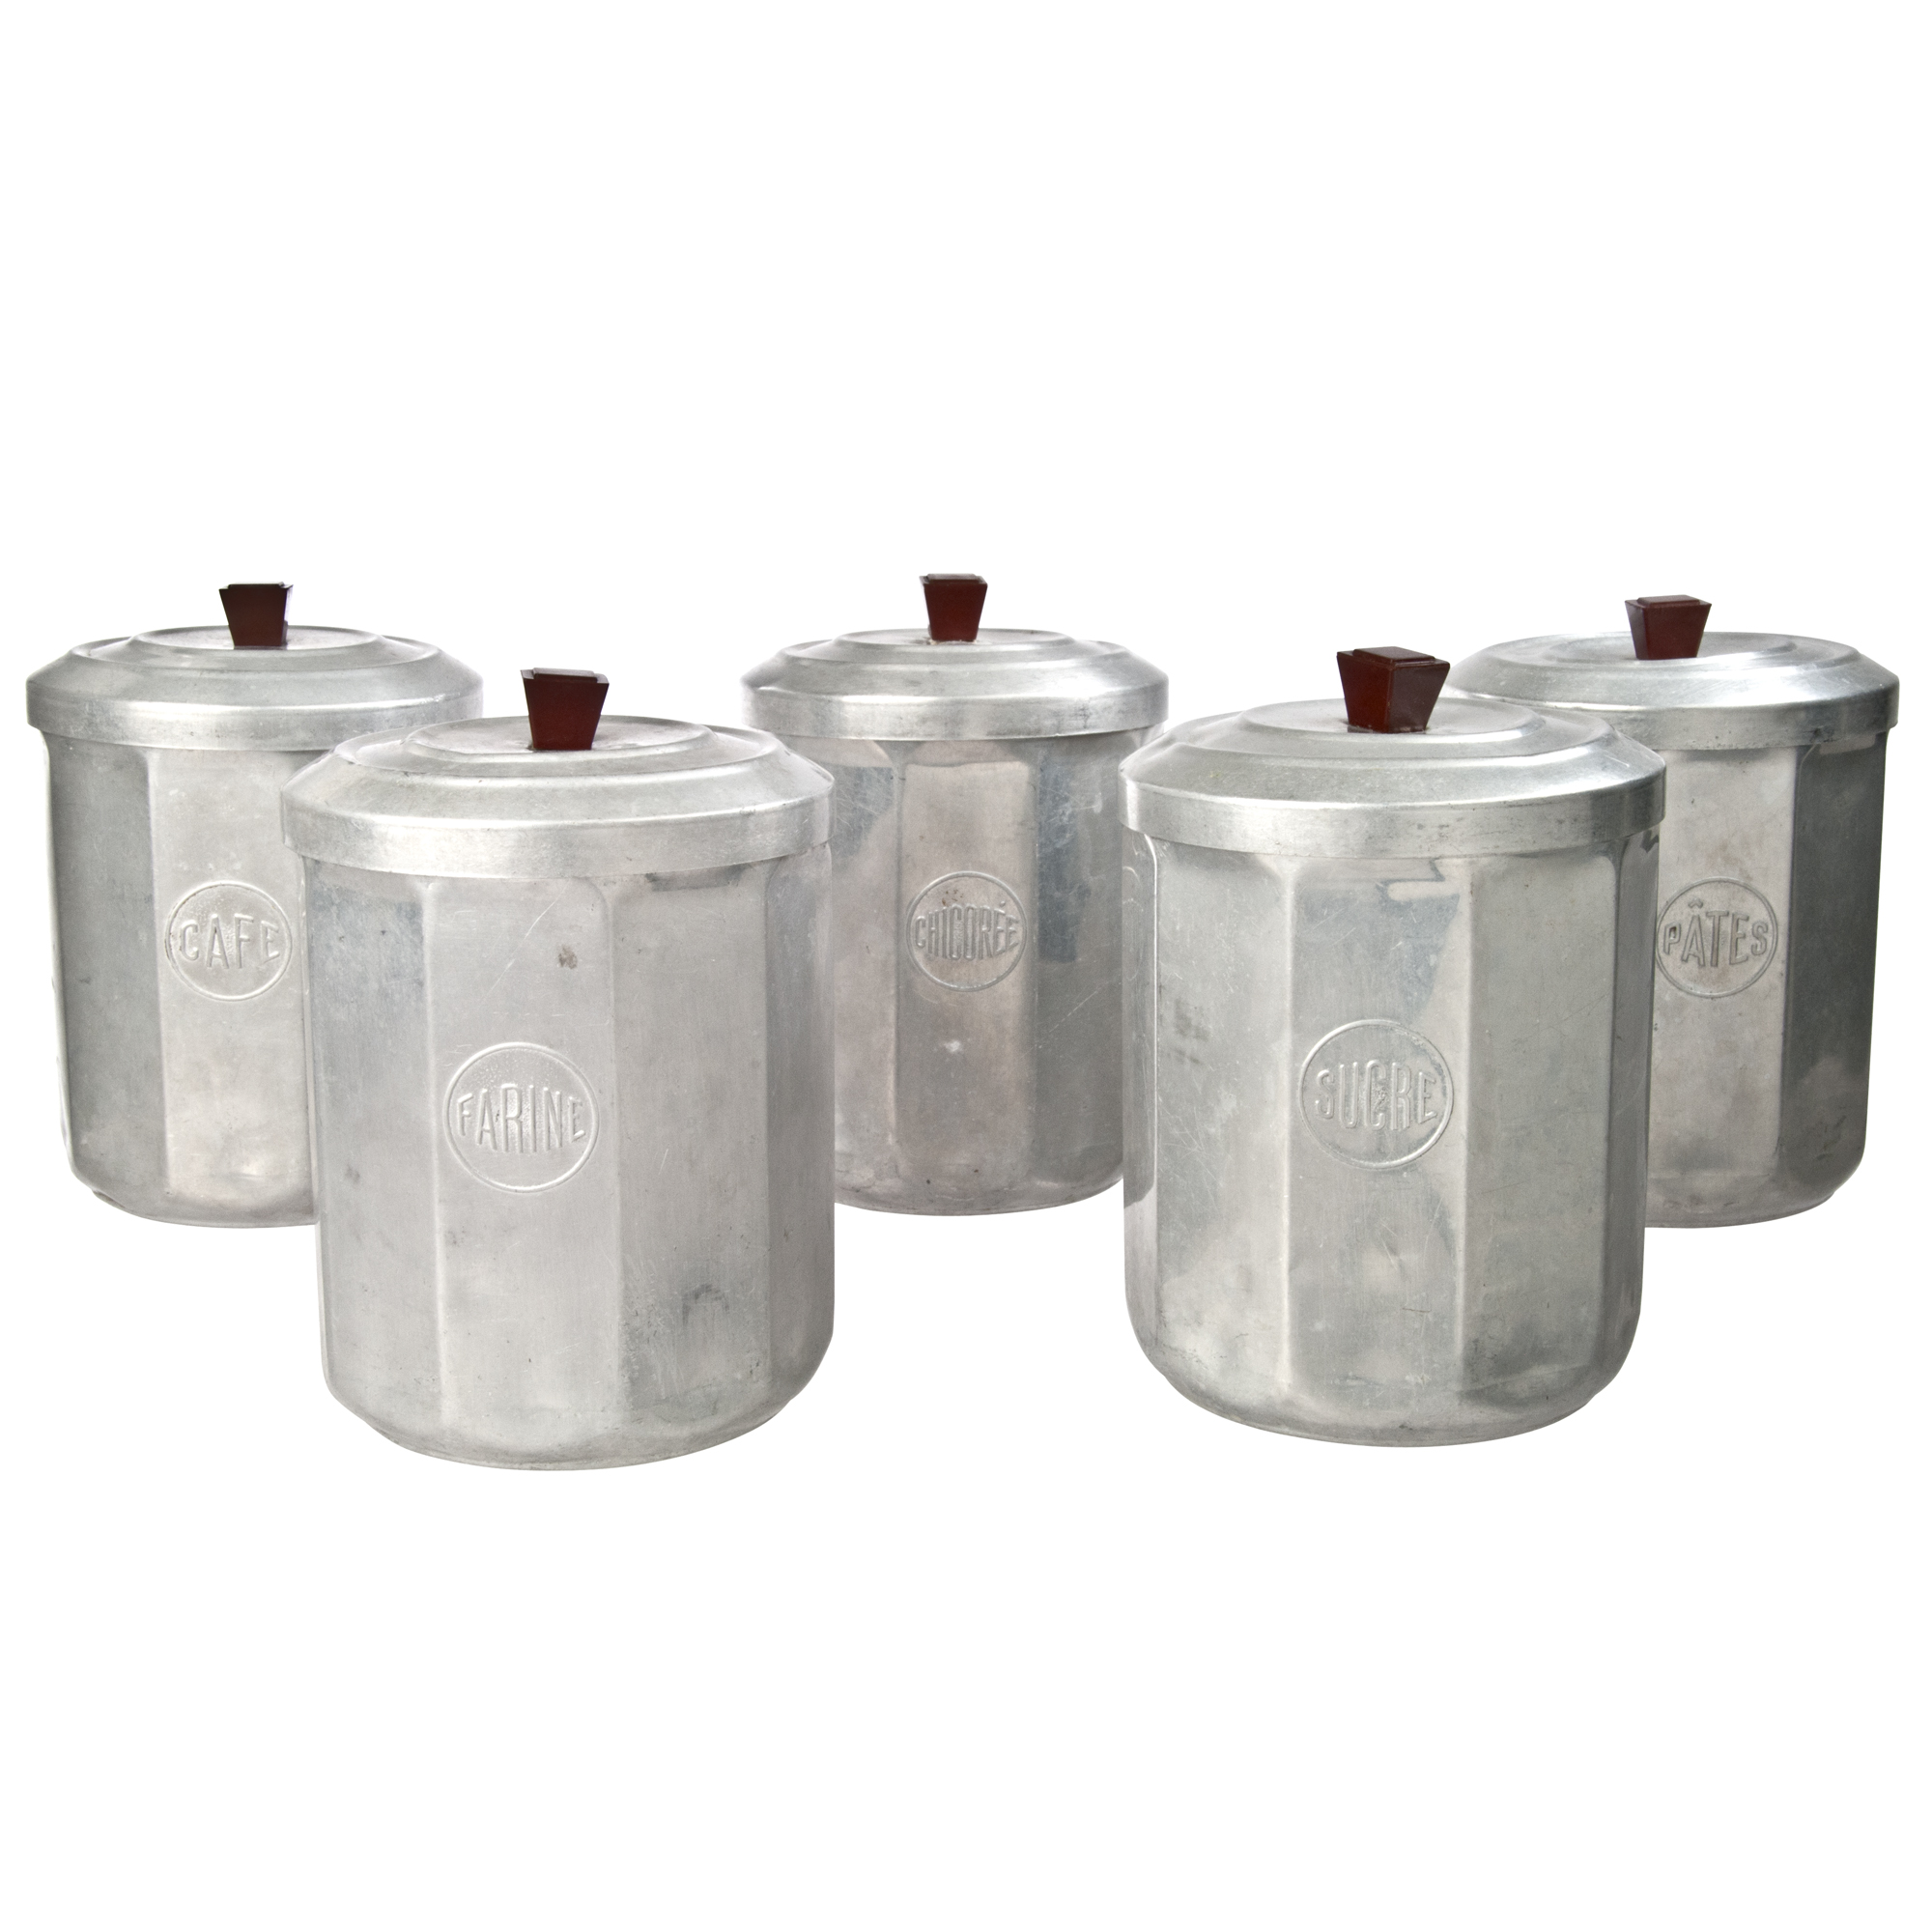 french aluminum kitchen canisters set of 5 chairish